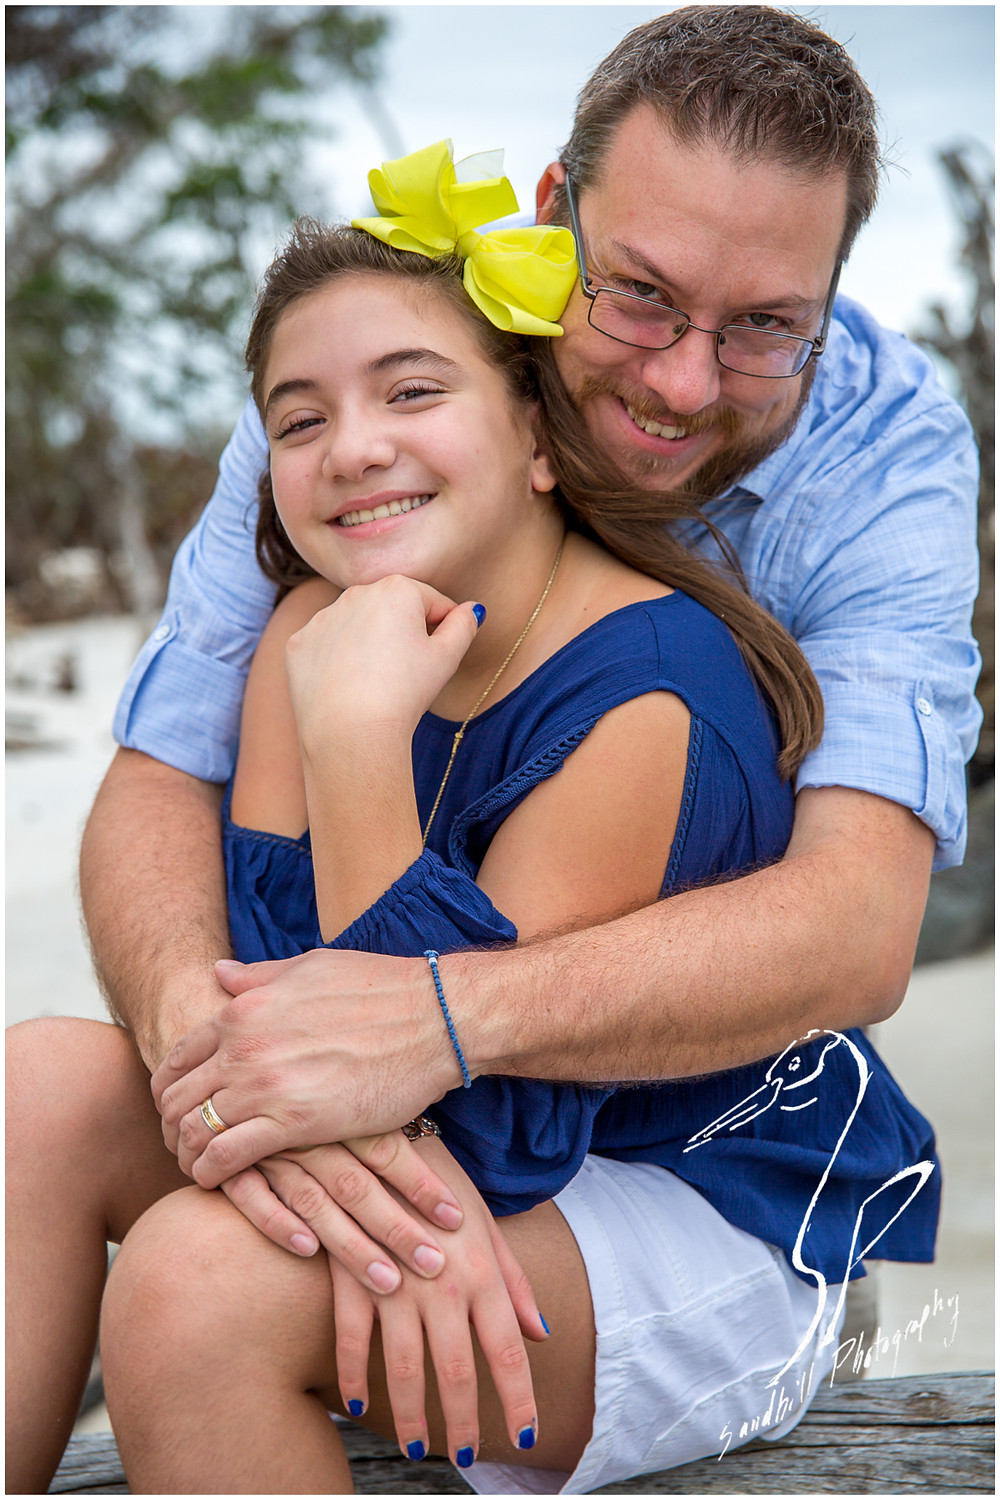 Longboat Key Family Photographer, a father embraces his daughter for a portrait taken by Sandhill Photography